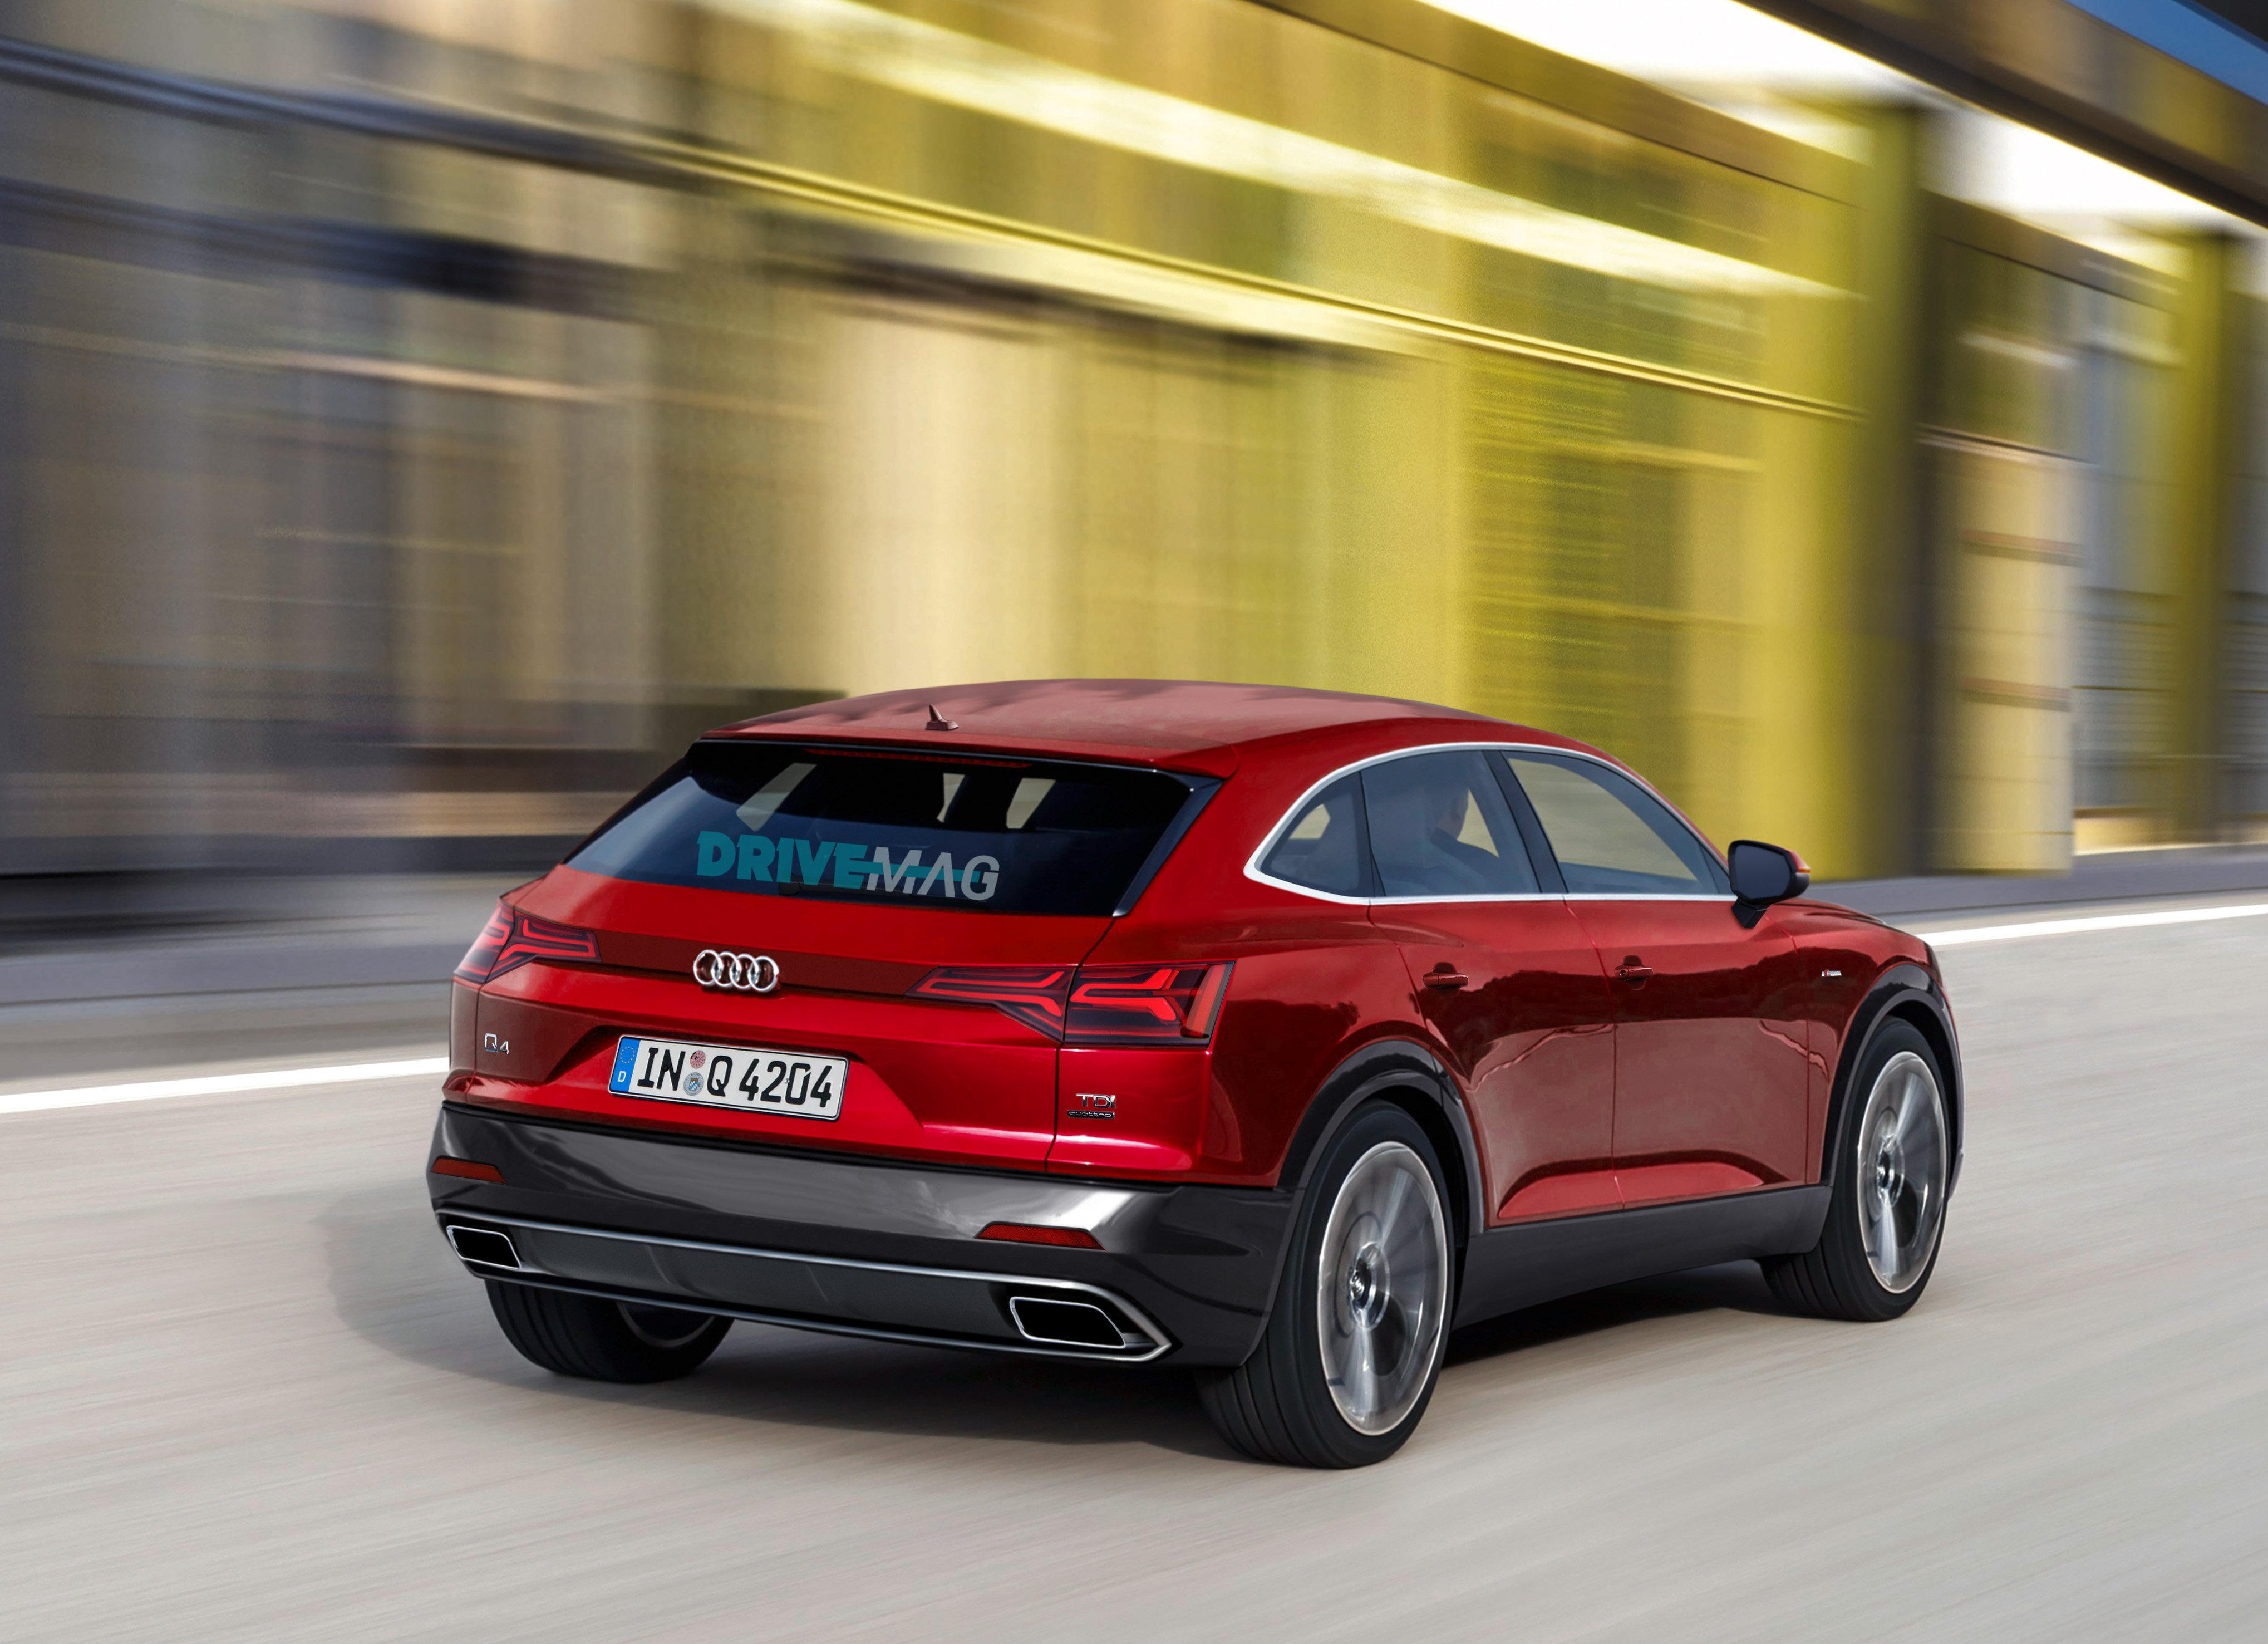 by latest company unveiled model models audi generation the has suv second been vehicle pin